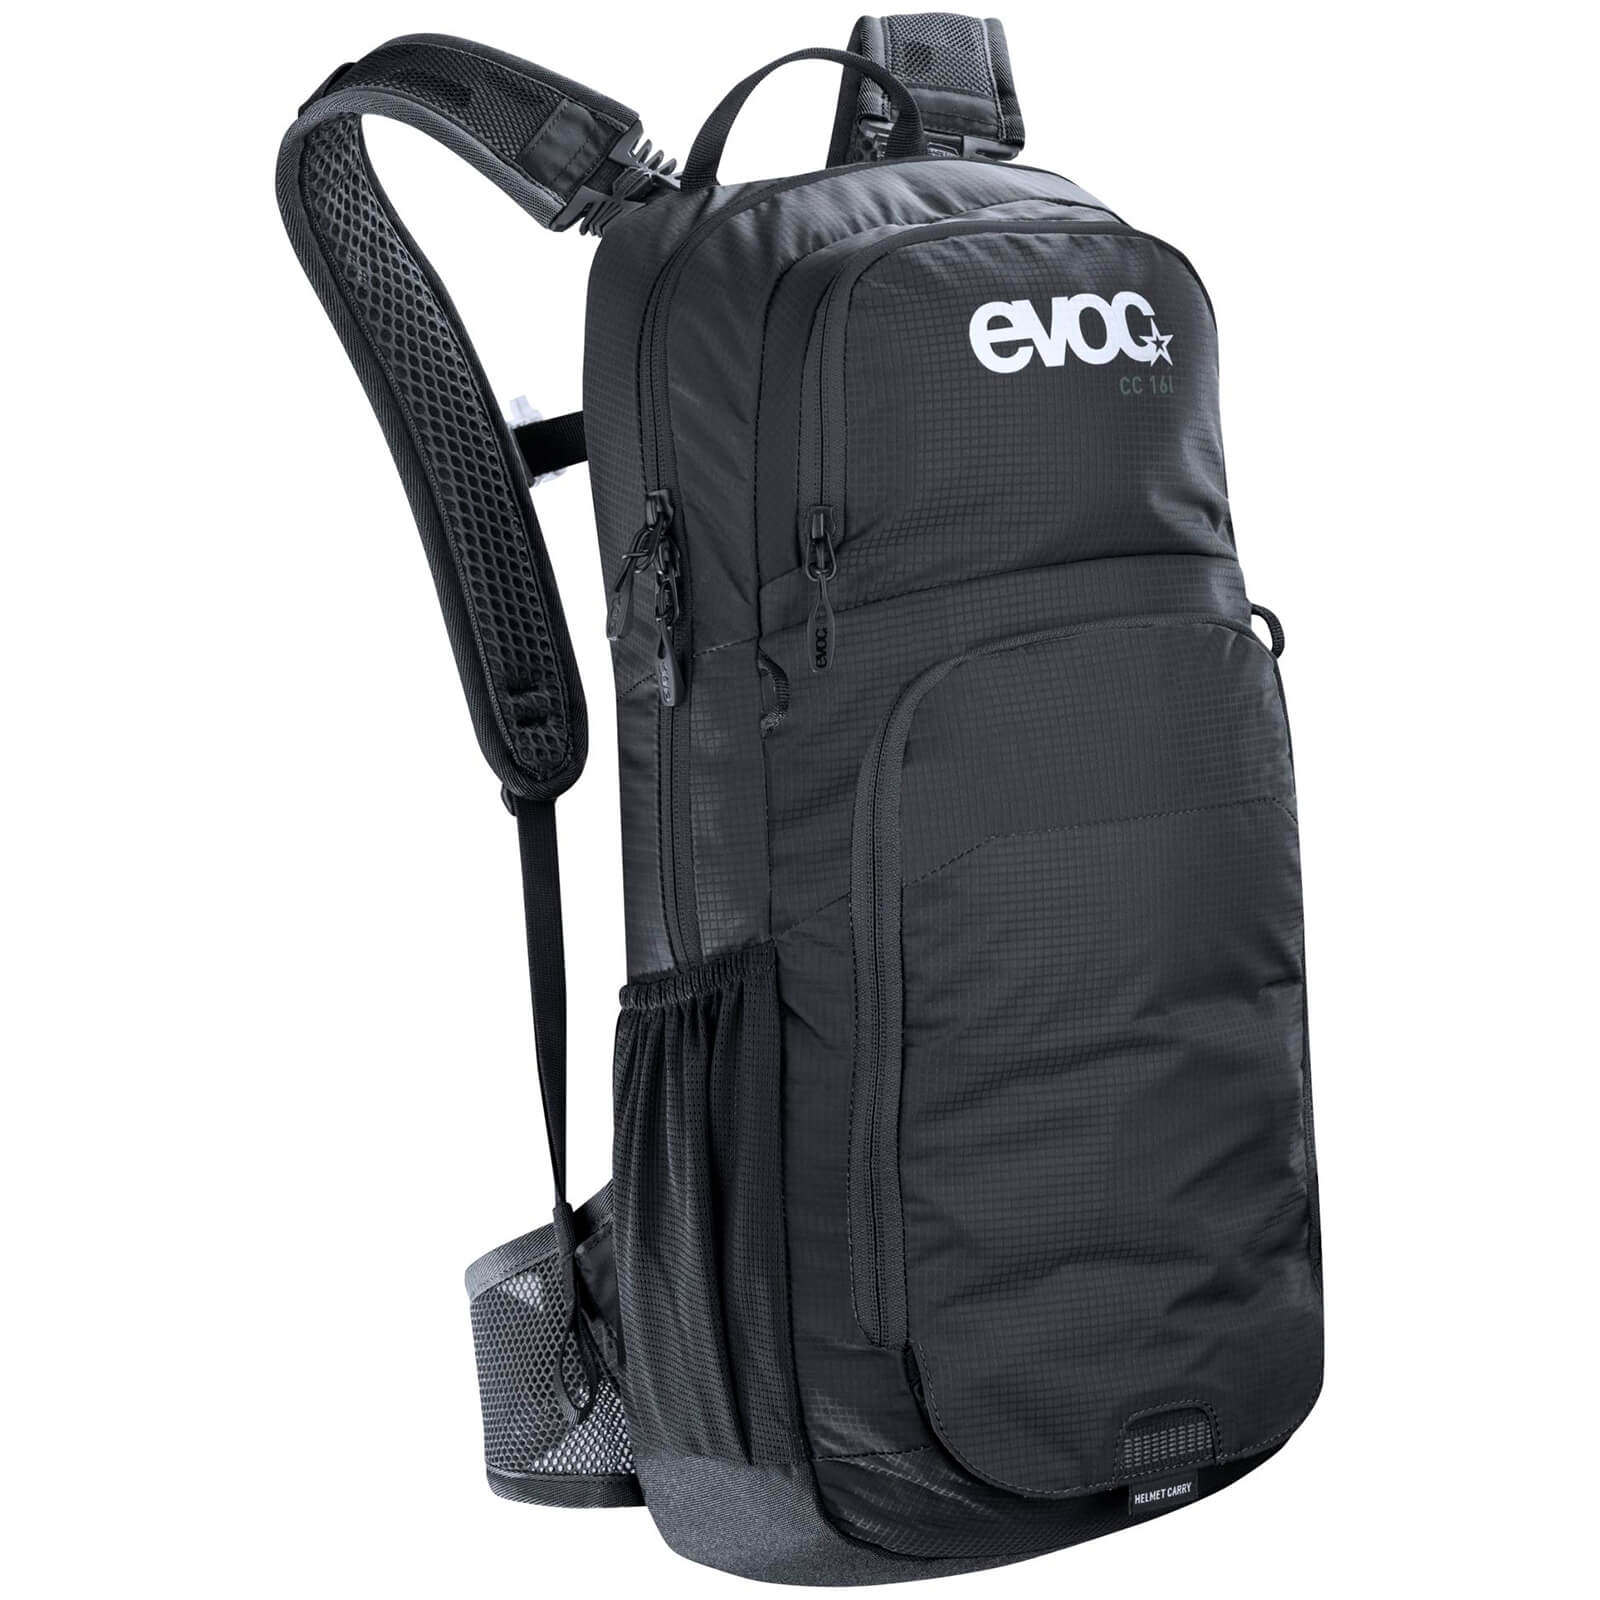 Evoc CC 16L Backpack - Black